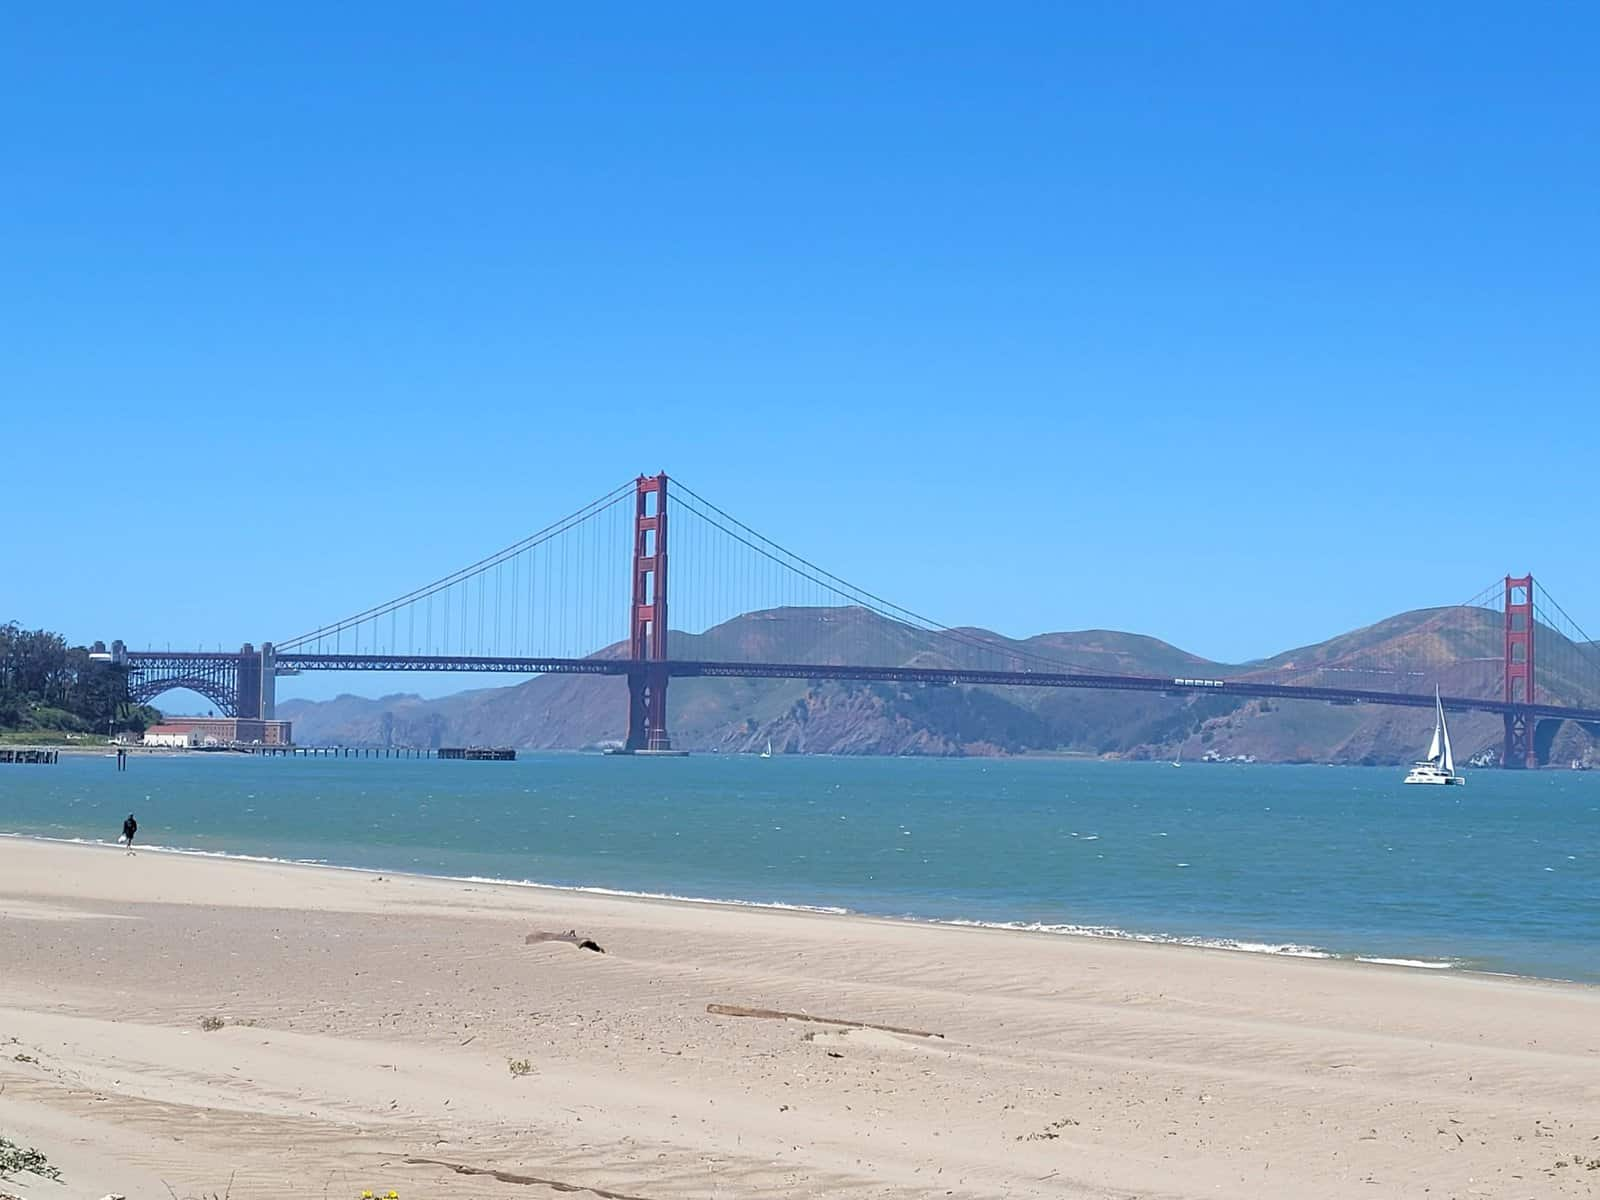 chrissy field east beach at presidio in san francisco offers great view of the golden gate bridge